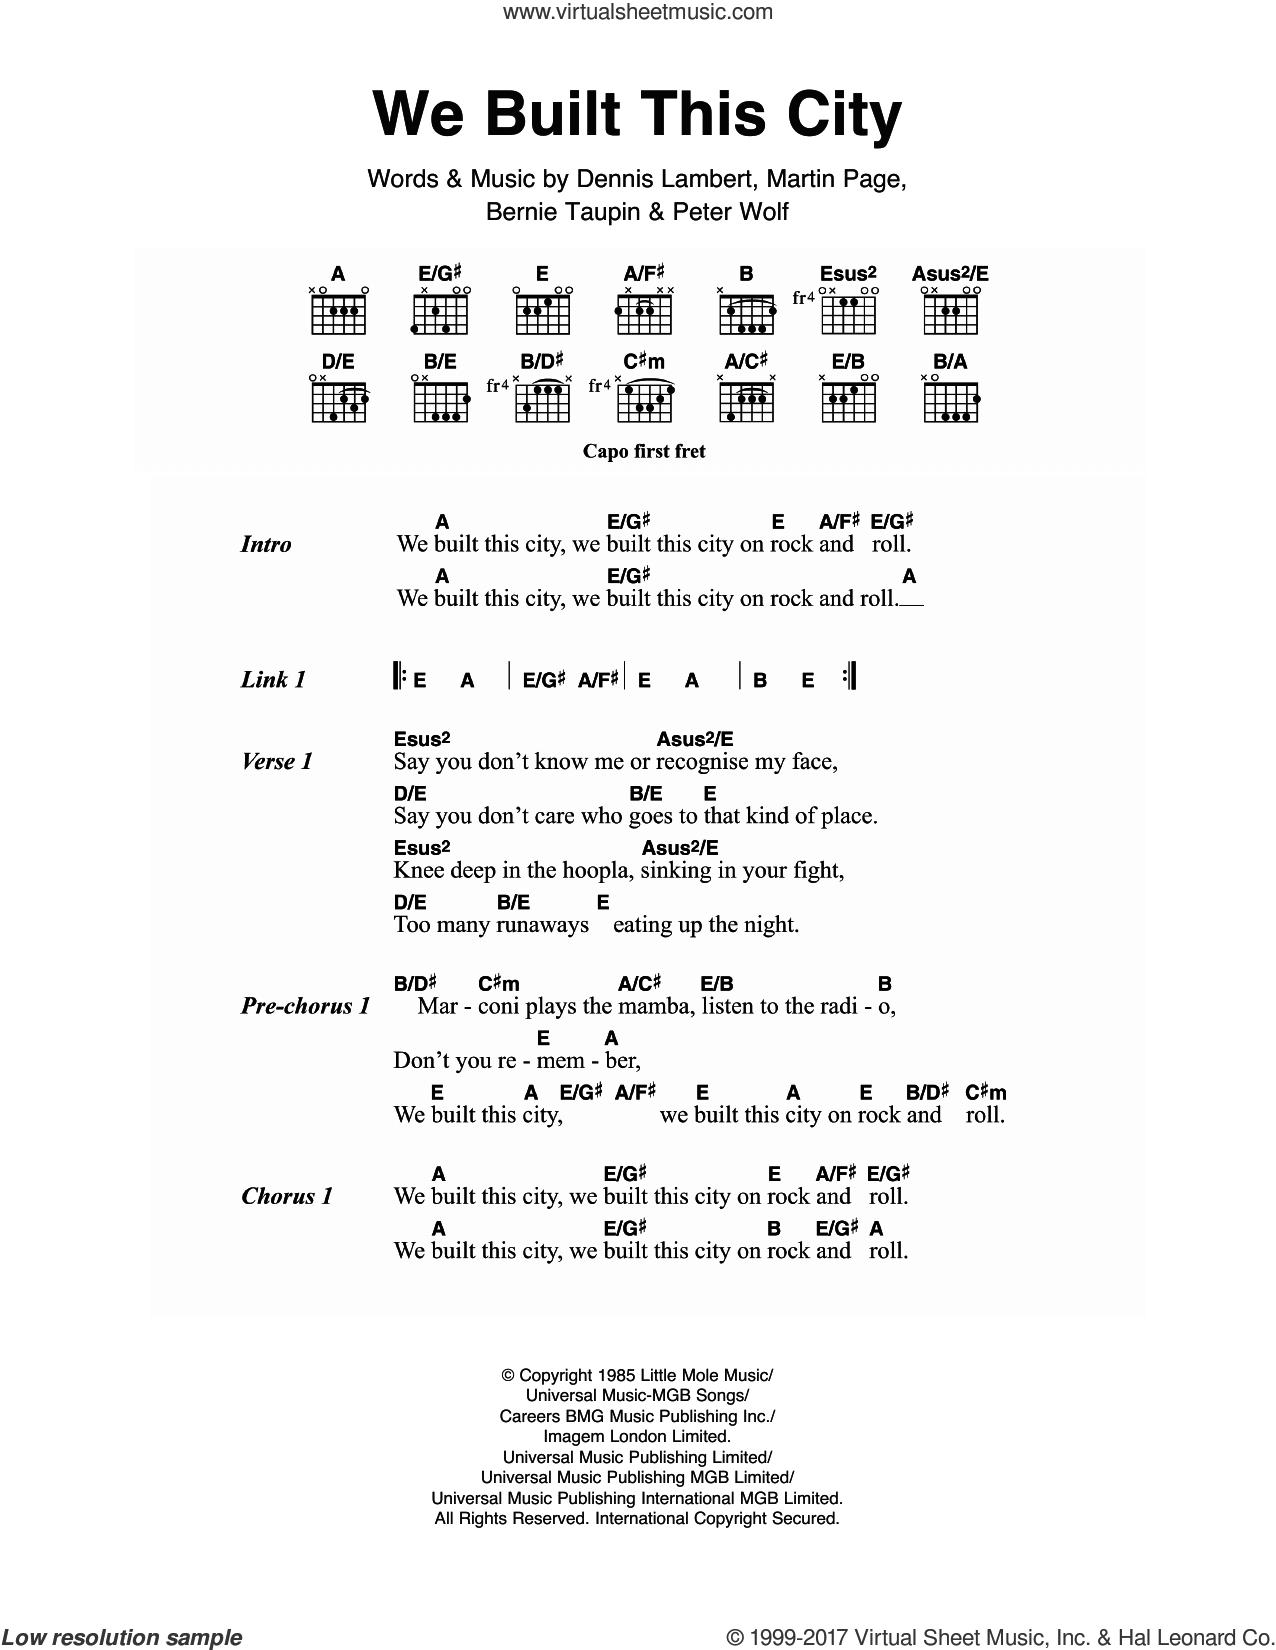 We Built This City sheet music for guitar (chords) by Starship, Bernie Taupin, Dennis Lambert, Martin George Page and Peter Wolf, intermediate skill level